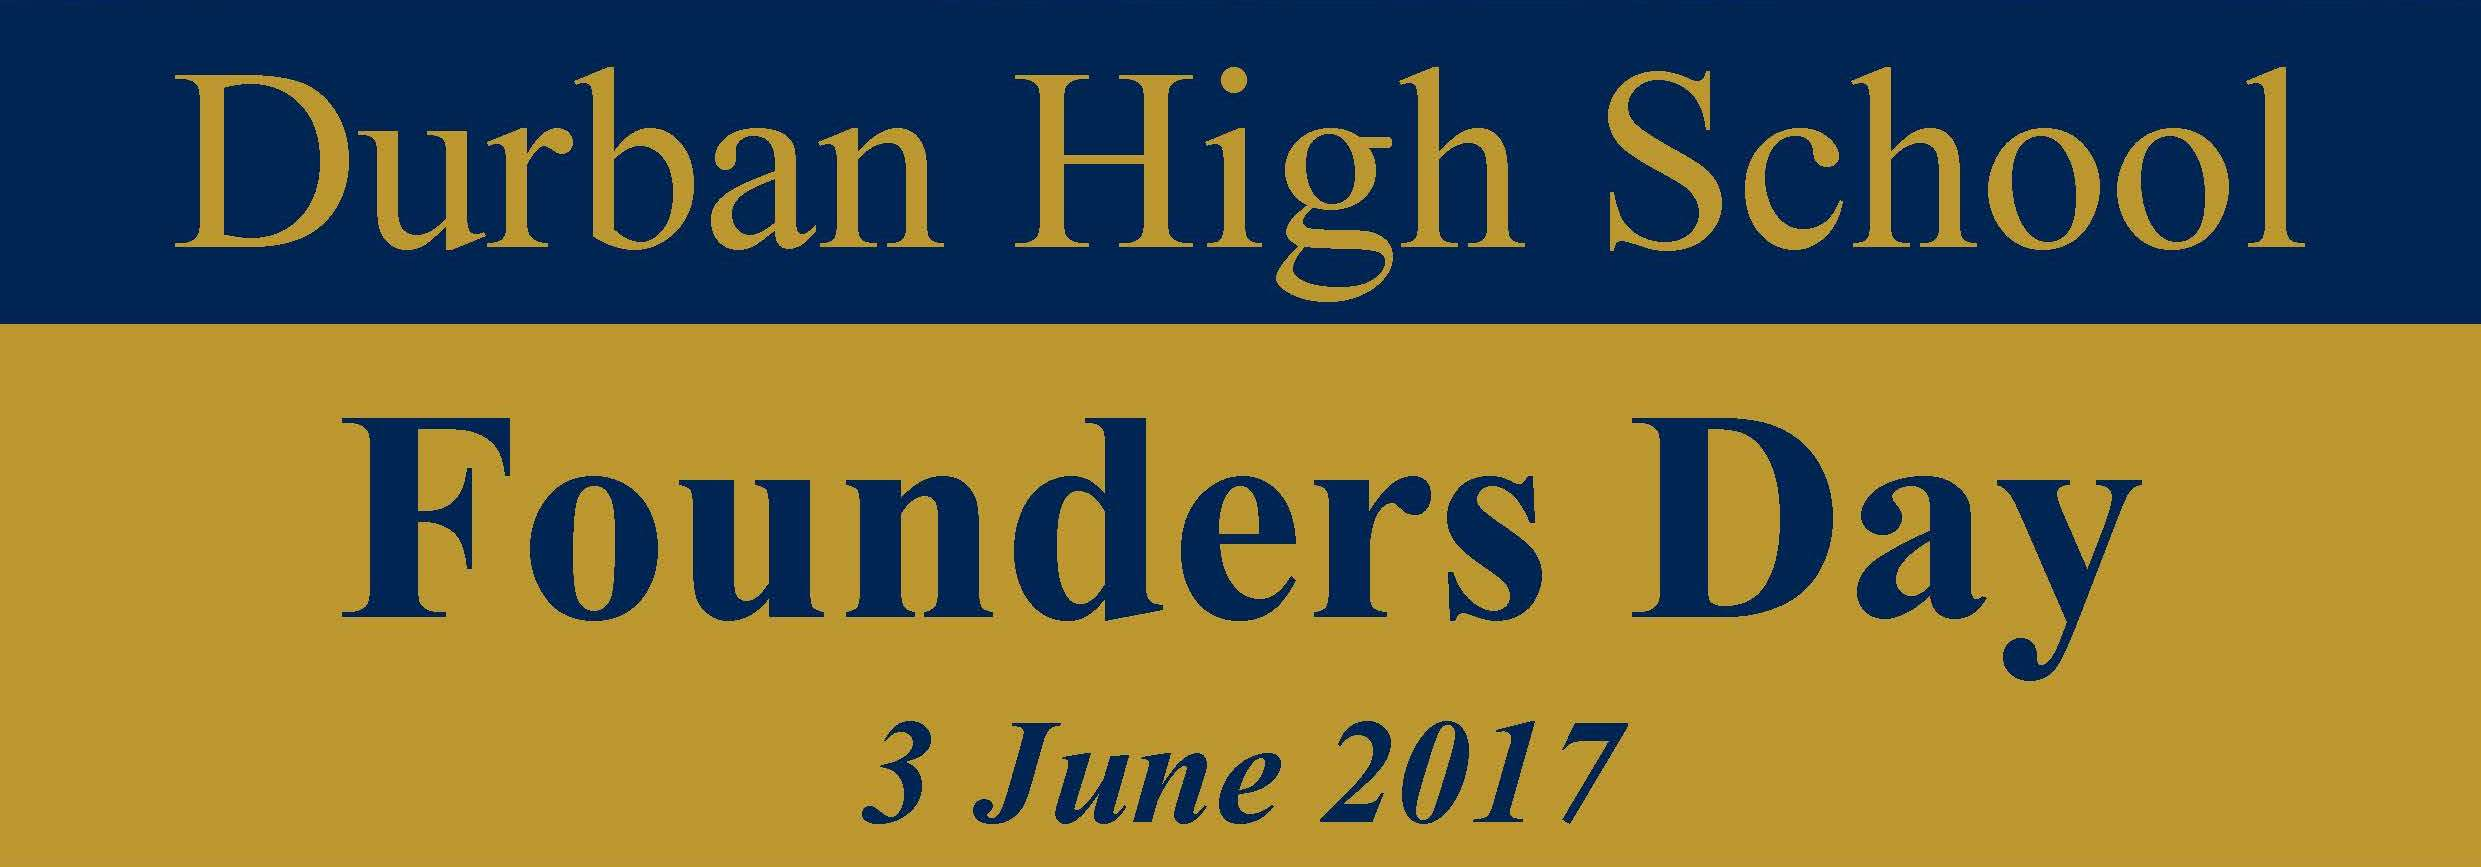 Founders Day : 3 June 2017